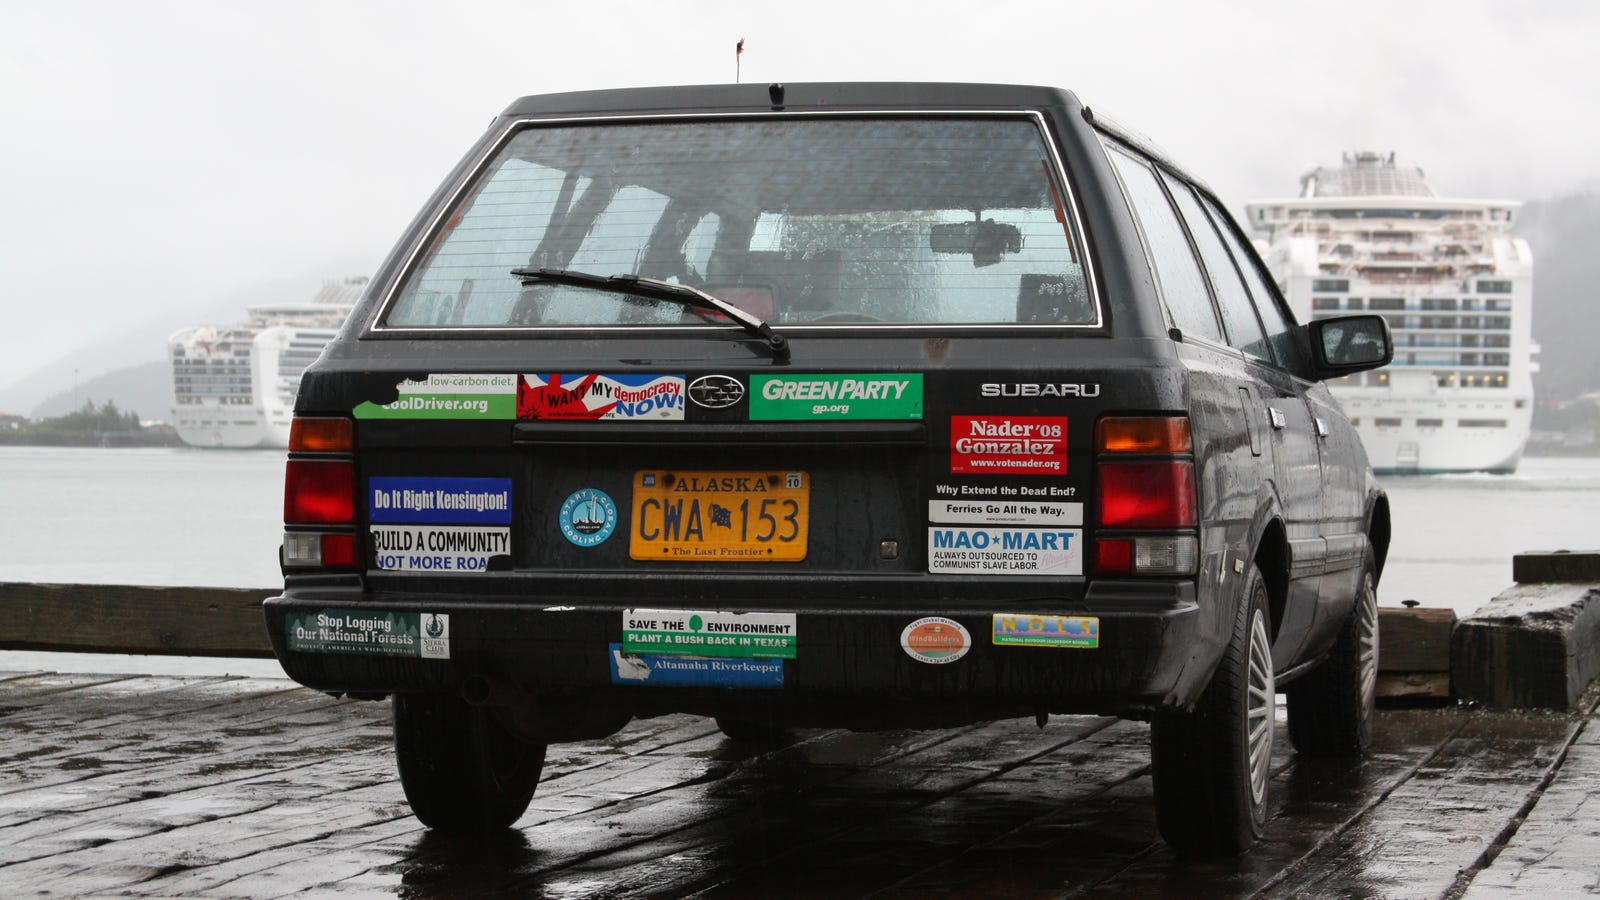 You can take your bumper stickers and get the hell out solutioingenieria Image collections